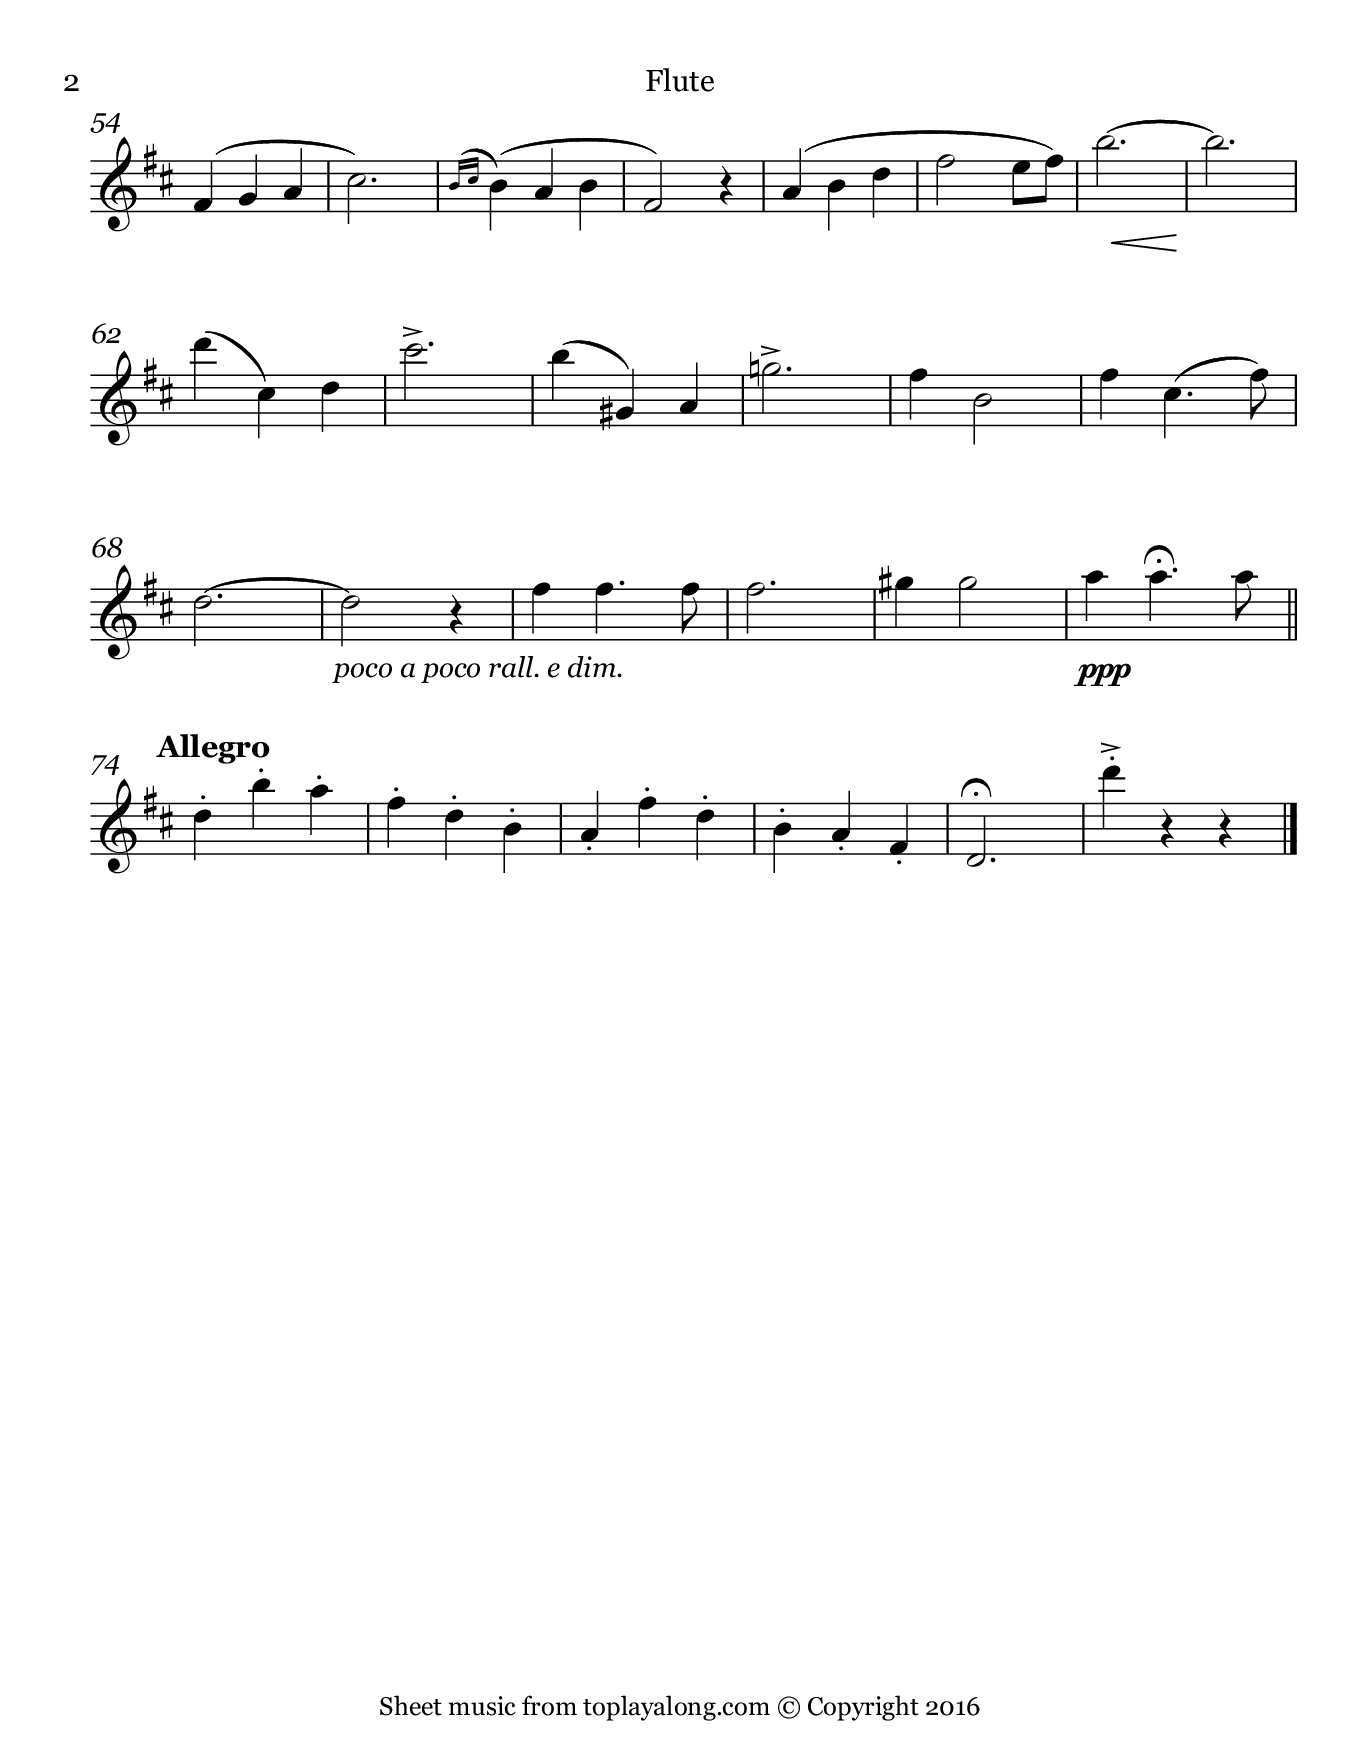 Kiss Me Again from Mlle. Modiste by Herbert. Sheet music for Flute, page 2.